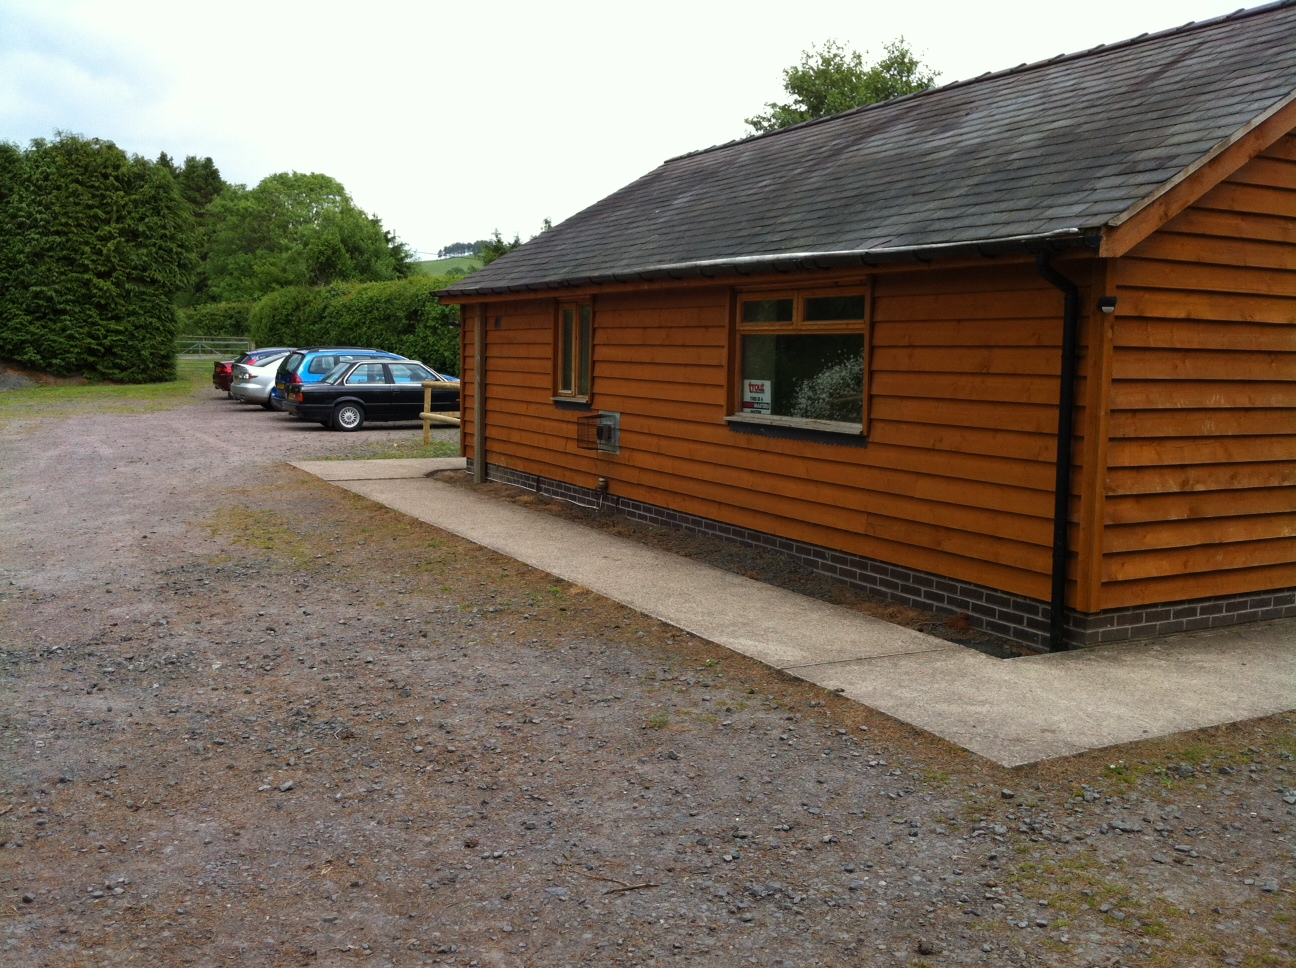 Facilities onny vale trout coarse fishery for Colorado fishing lodges